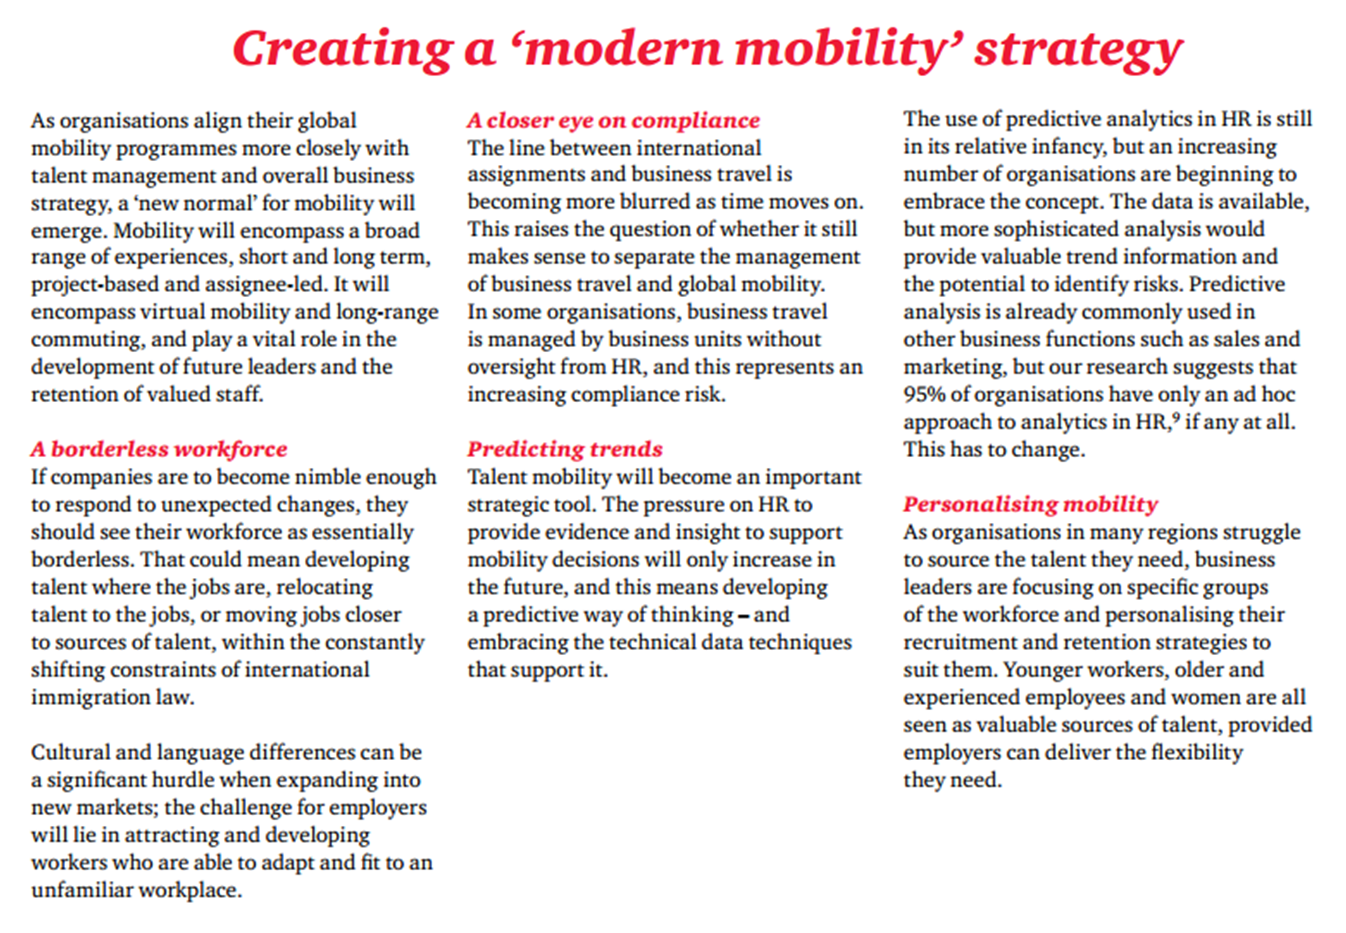 creating_modern_mobility_strategy_PwC